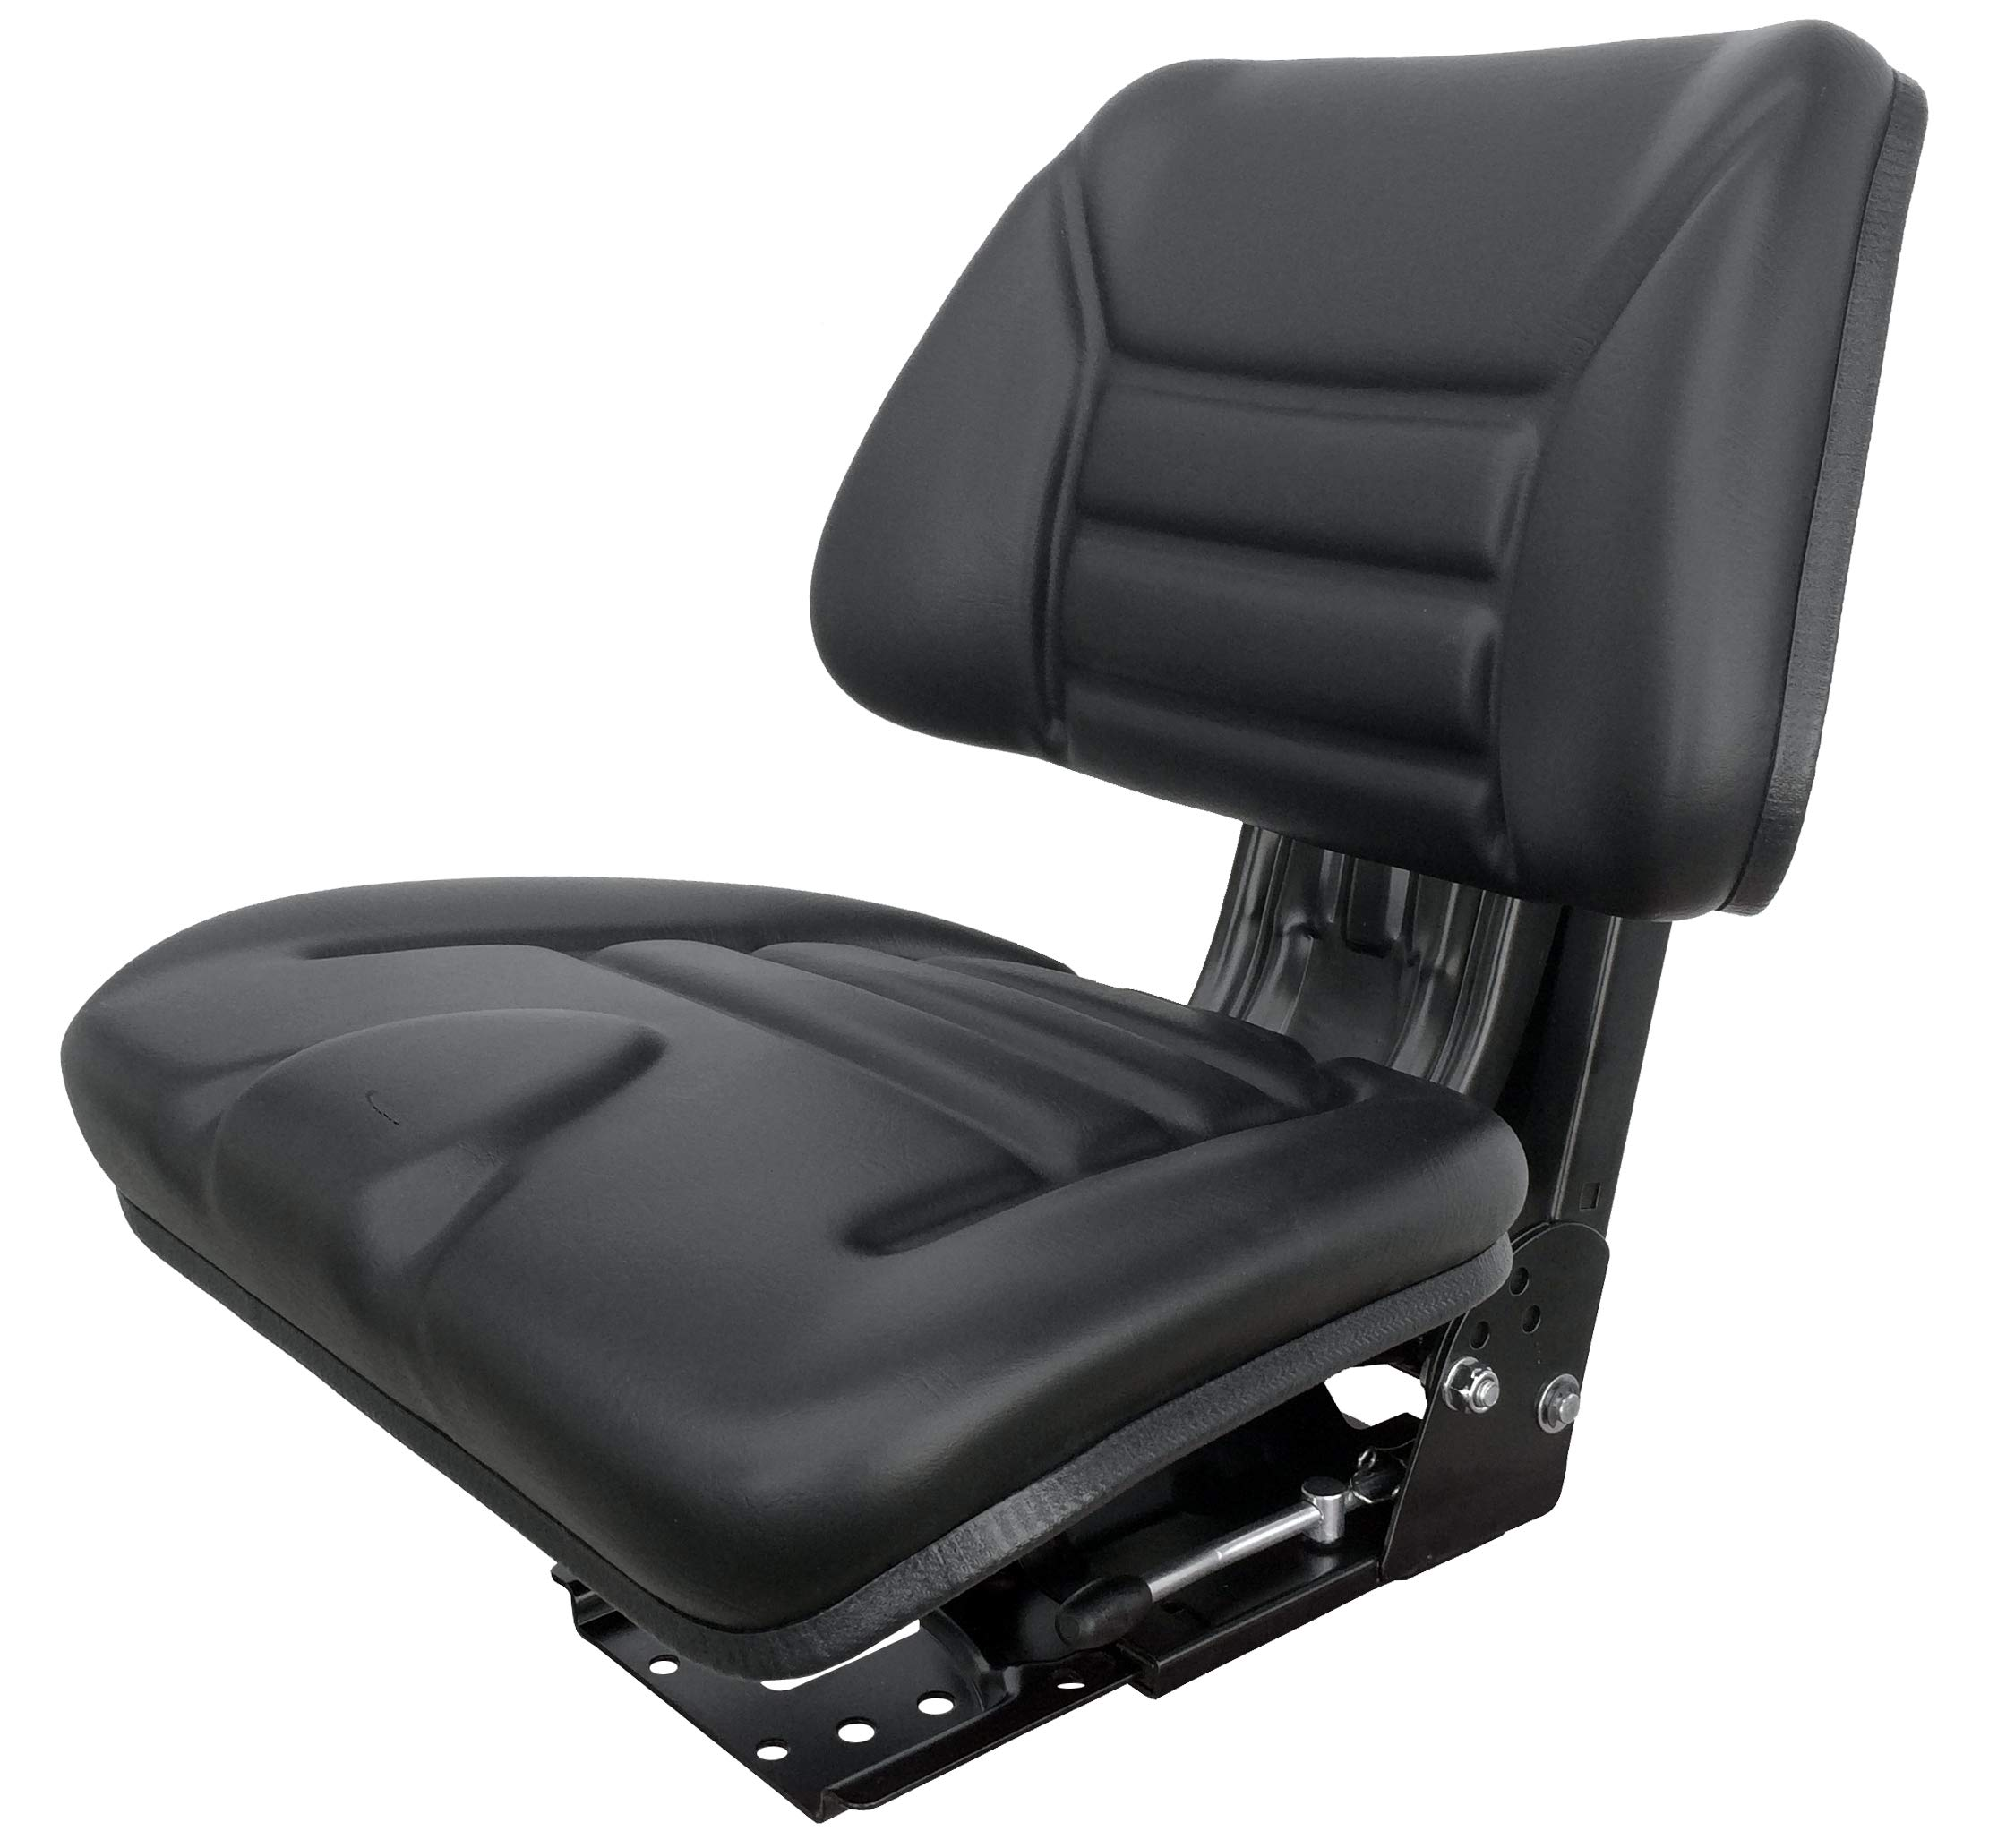 Star ECO 111 Black Universal Suspension Slide Adjustment Multi Angle Base Tractor Seat (Replacement for Several)